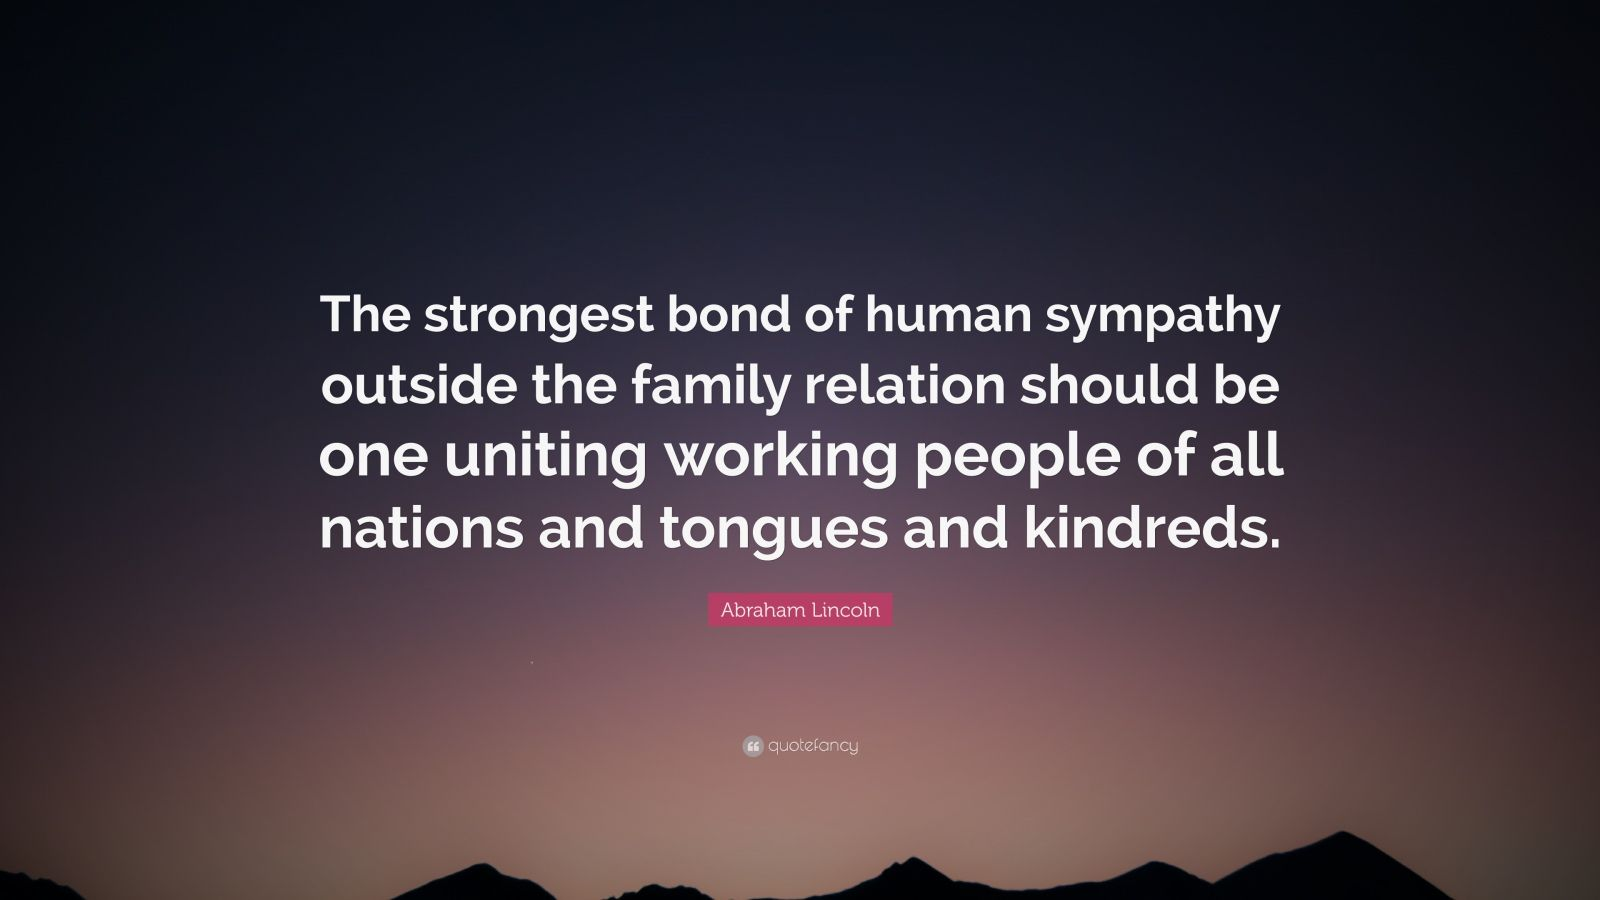 """Abraham Lincoln Quote: """"The strongest bond of human sympathy outside the family relation should be one uniting working people of all nations and tongues and kindreds."""""""